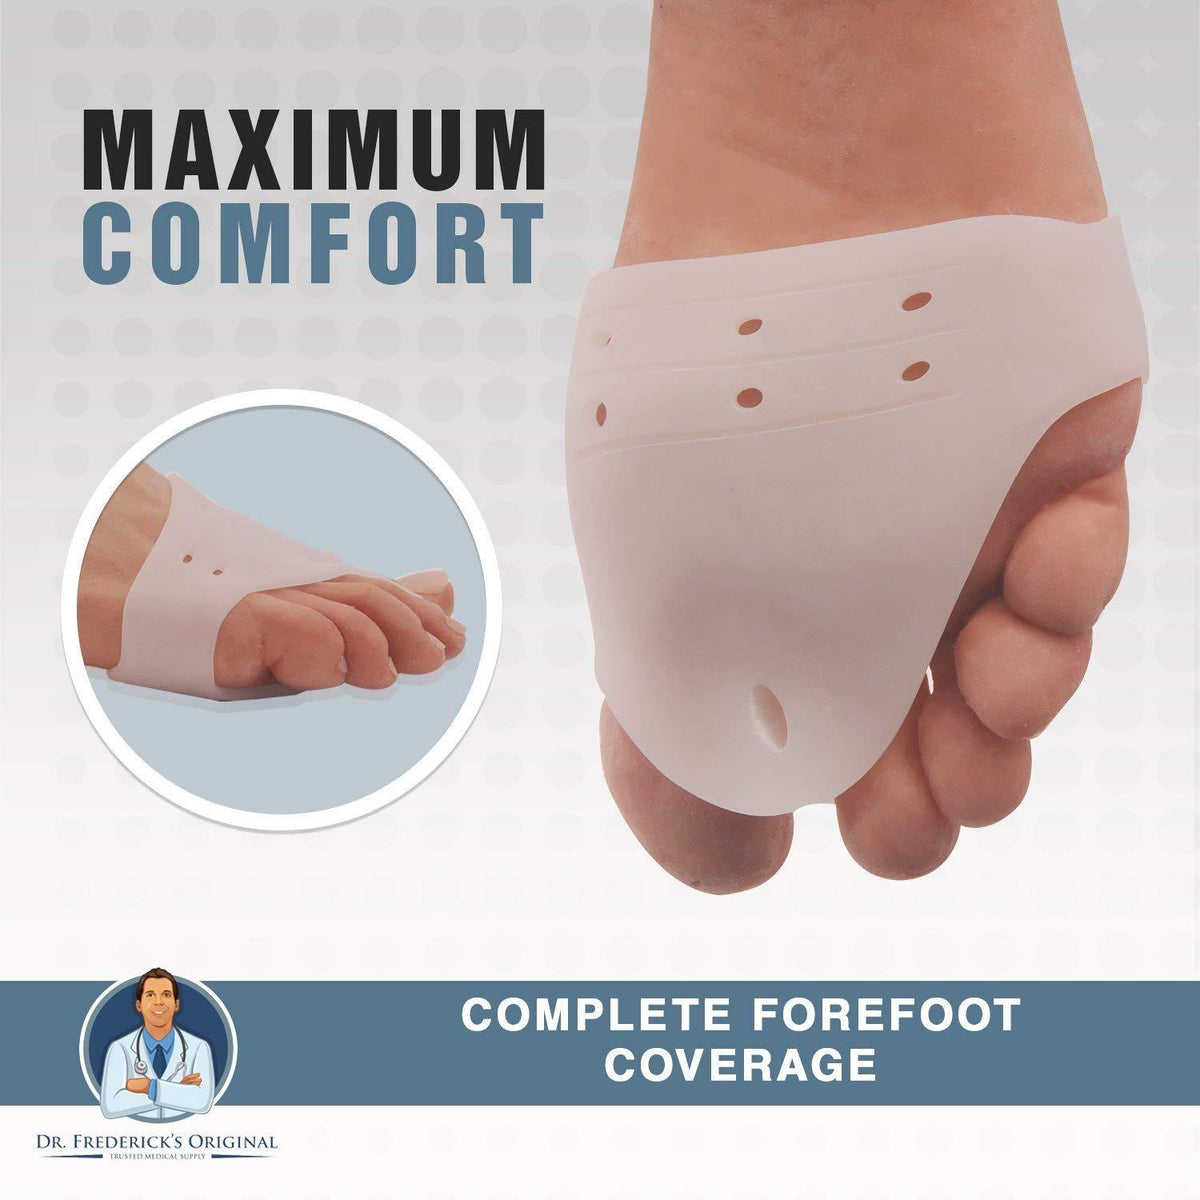 Dr. Frederick's Original Deluxe Metatarsal Cushion & Bunion Pad -- 2 Pieces - for Forefoot Pain, Bunions, and Tailor's Bunions Foot Pain Dr. Frederick's Original